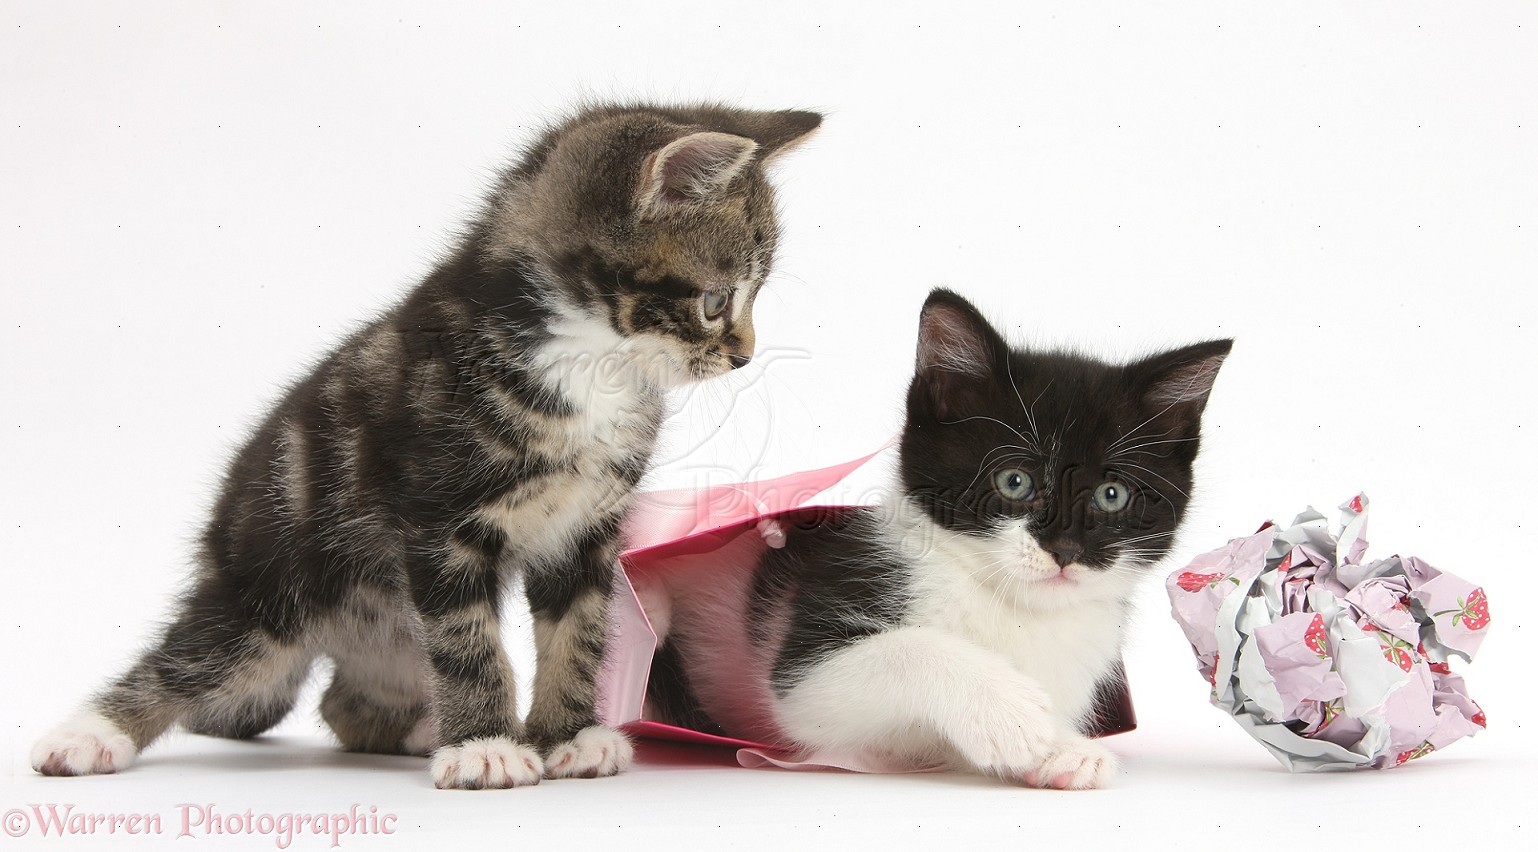 ... -and-white kittens playing with birthday gift bag and wrapping paper